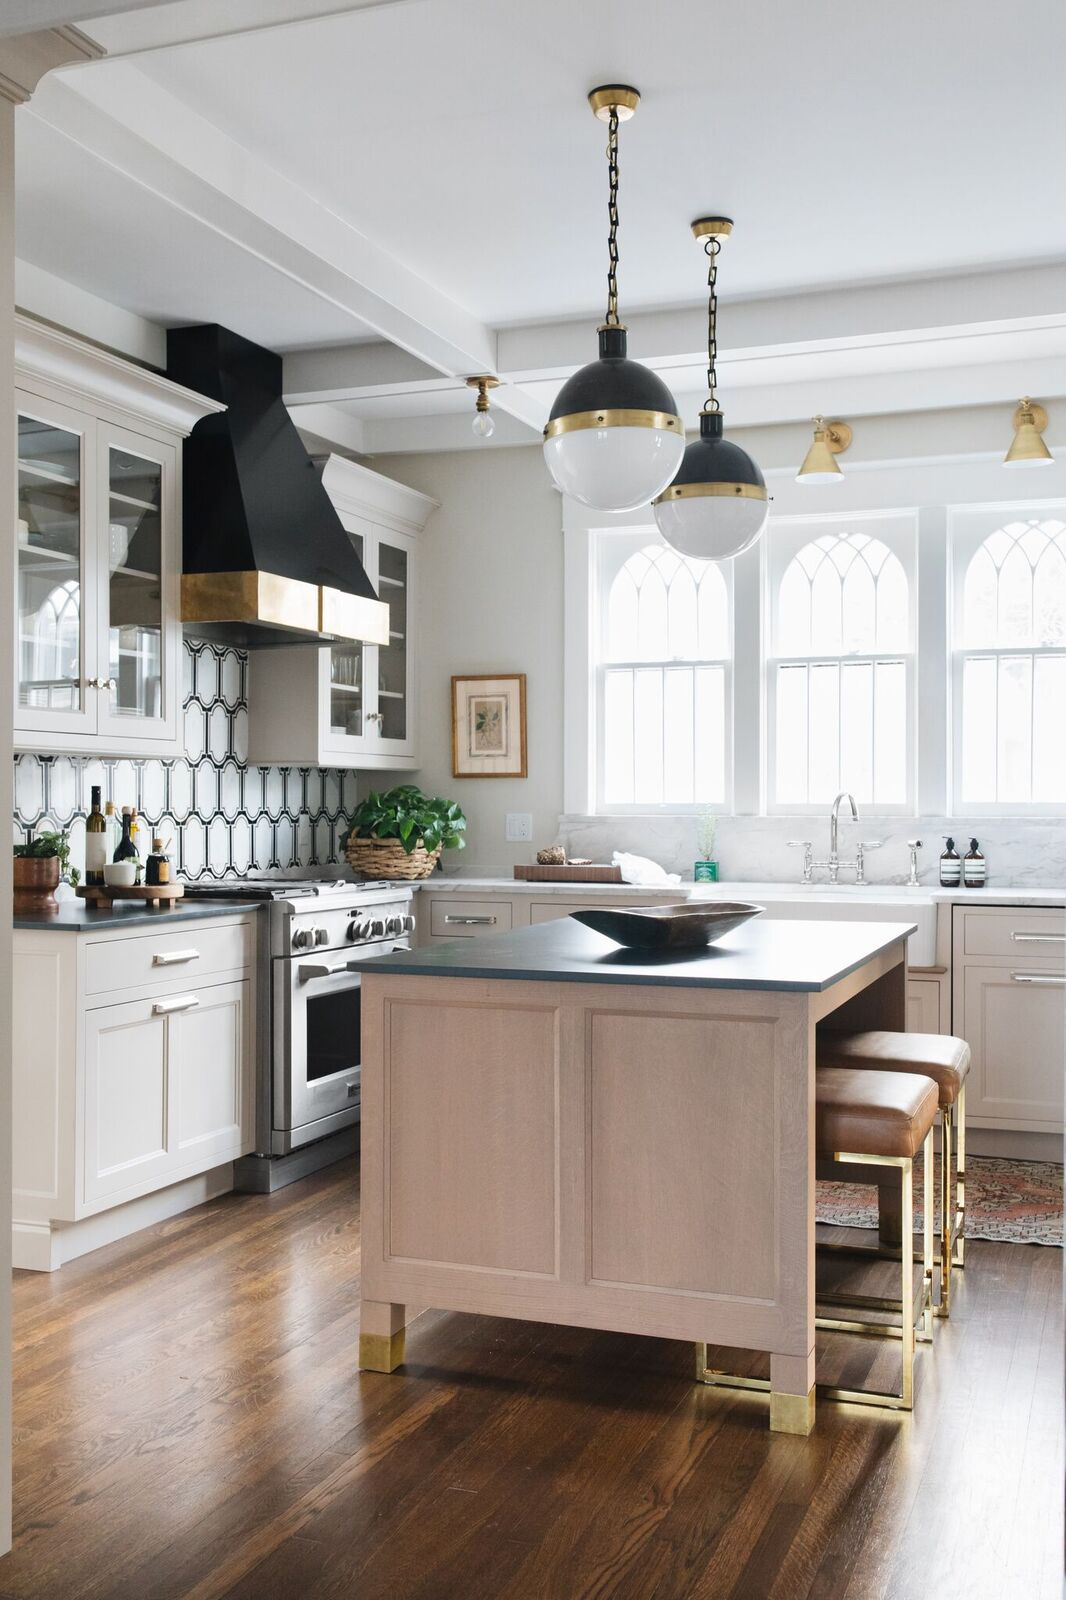 Kitchen In 1902 Victorian Home Designed By Jean Stoffer Design.  Photography: John Stoffer